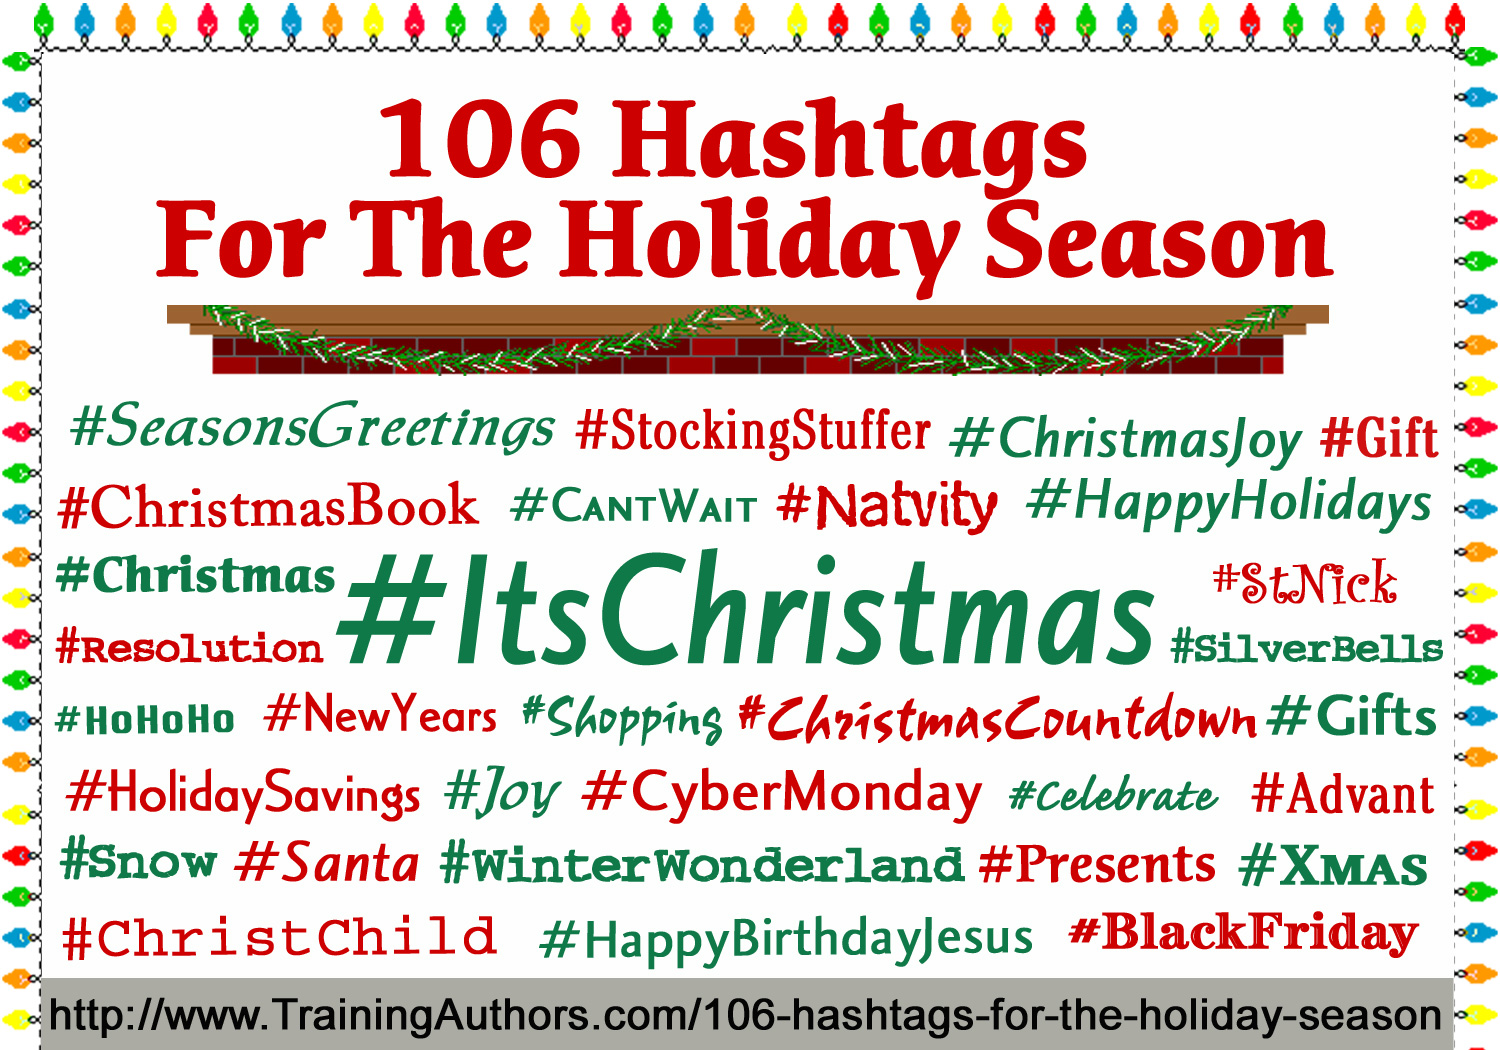 Top Christmas Hashtags 2021 106 Hashtags For The Holiday Season Training Authors With Cj And Shelley Hitz